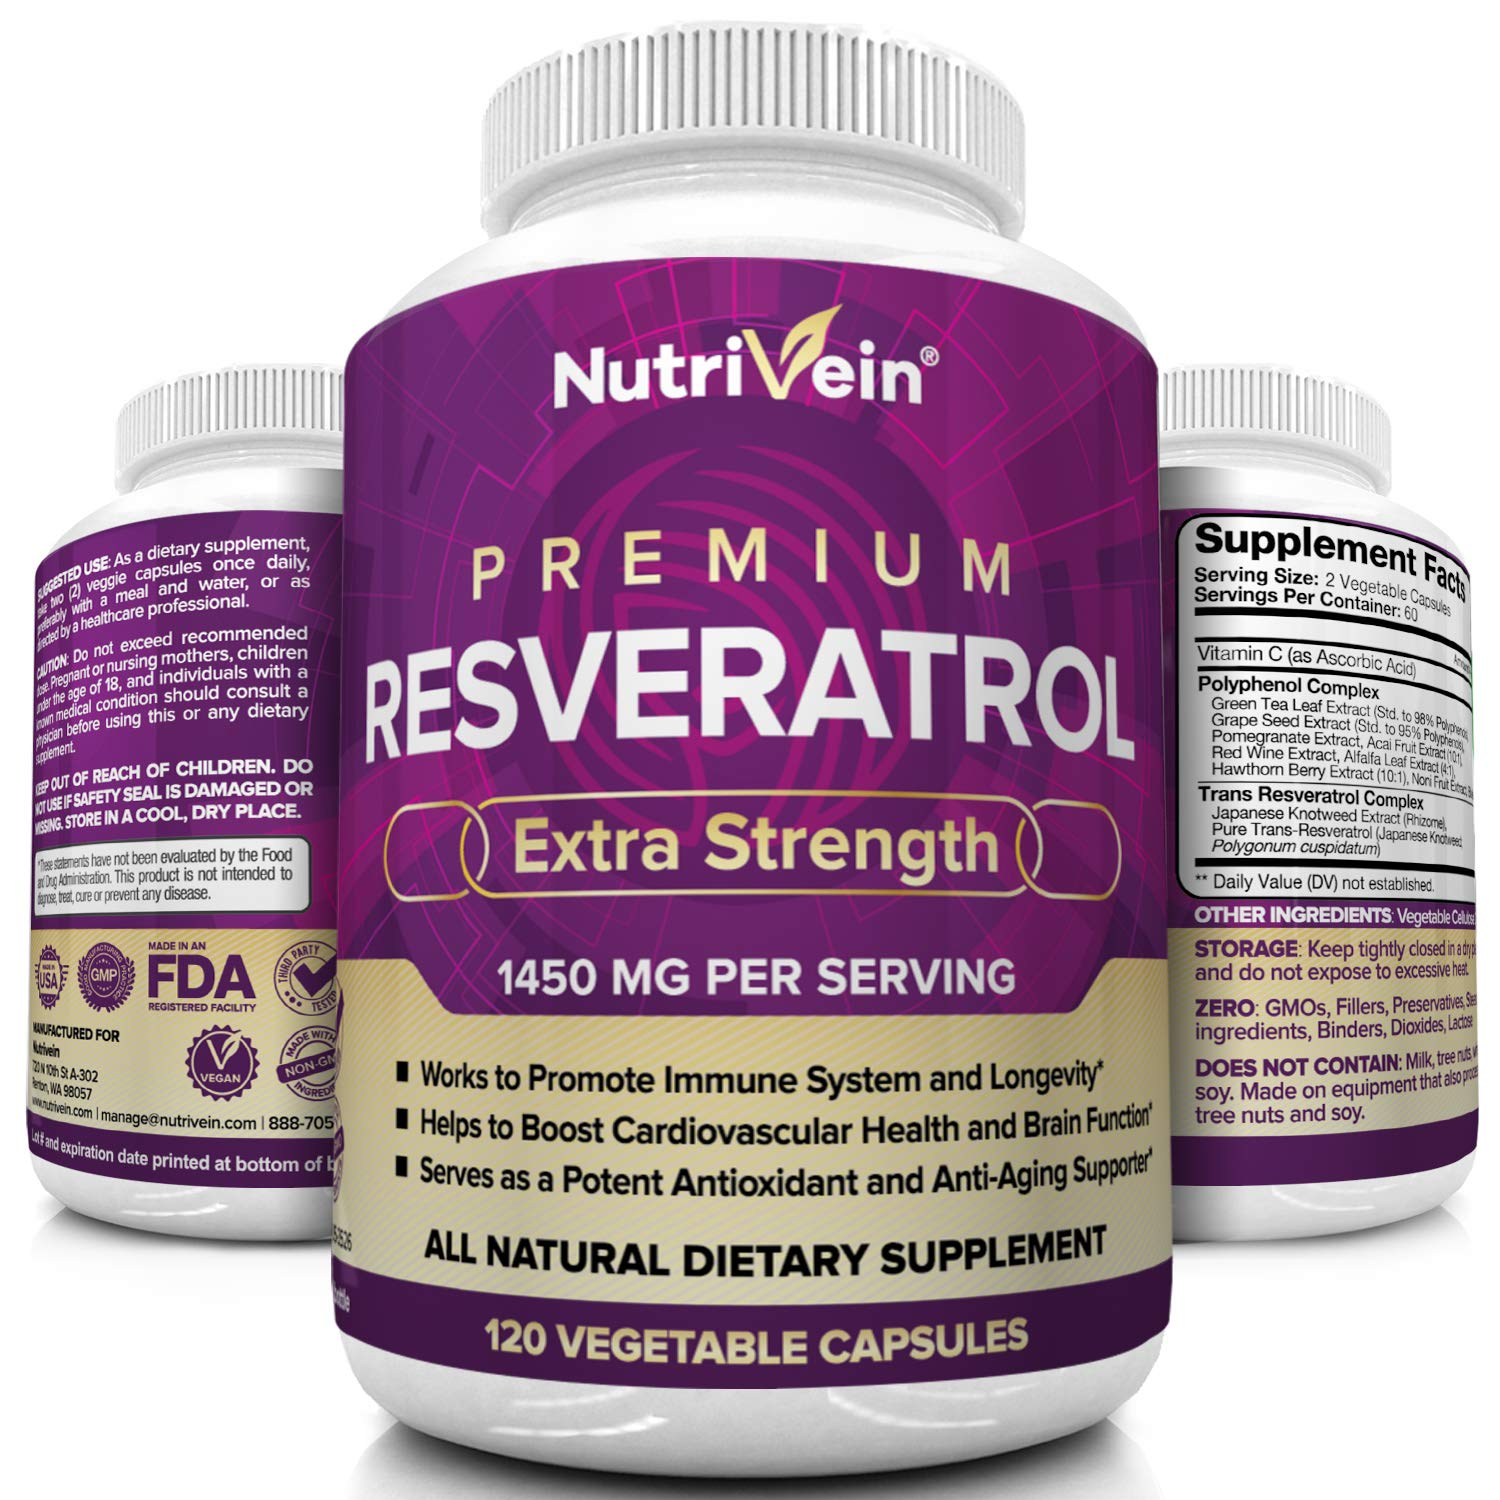 Nutrivein Resveratrol 1450mg - Anti Aging Antioxidant Supplement 120 Capsules - Promotes Immune, Cardiovascular Health and Blood Sugar Support - Made with Trans-Resveratrol, Green Tea Leaf, Acai Berry by Nutrivein